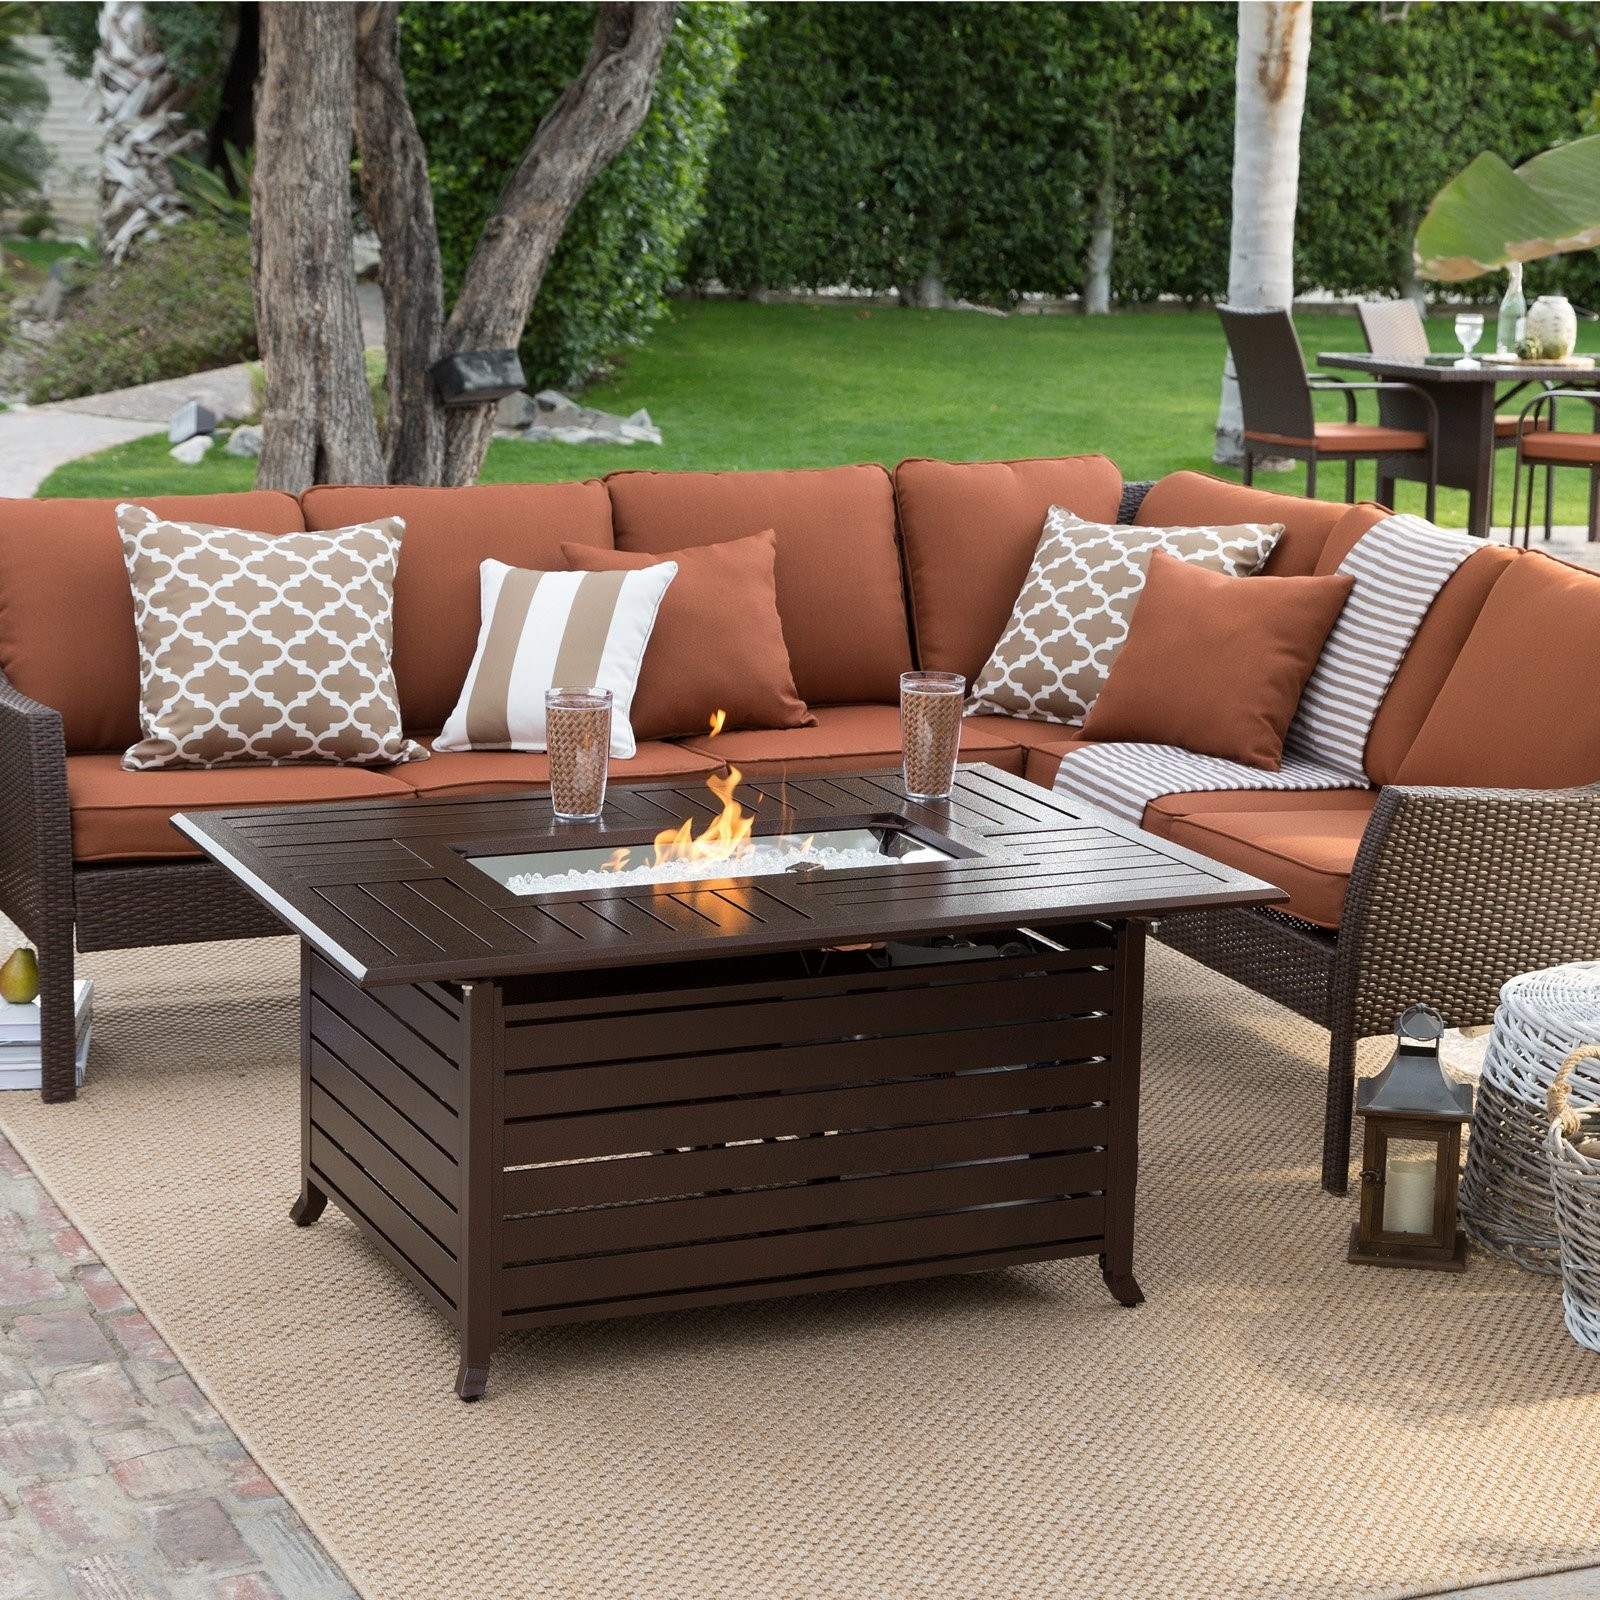 Well Known Patio Conversation Sets With Fire Pit Table With 30 Luxury Patio Set With Fire Pit Table Design (View 15 of 15)